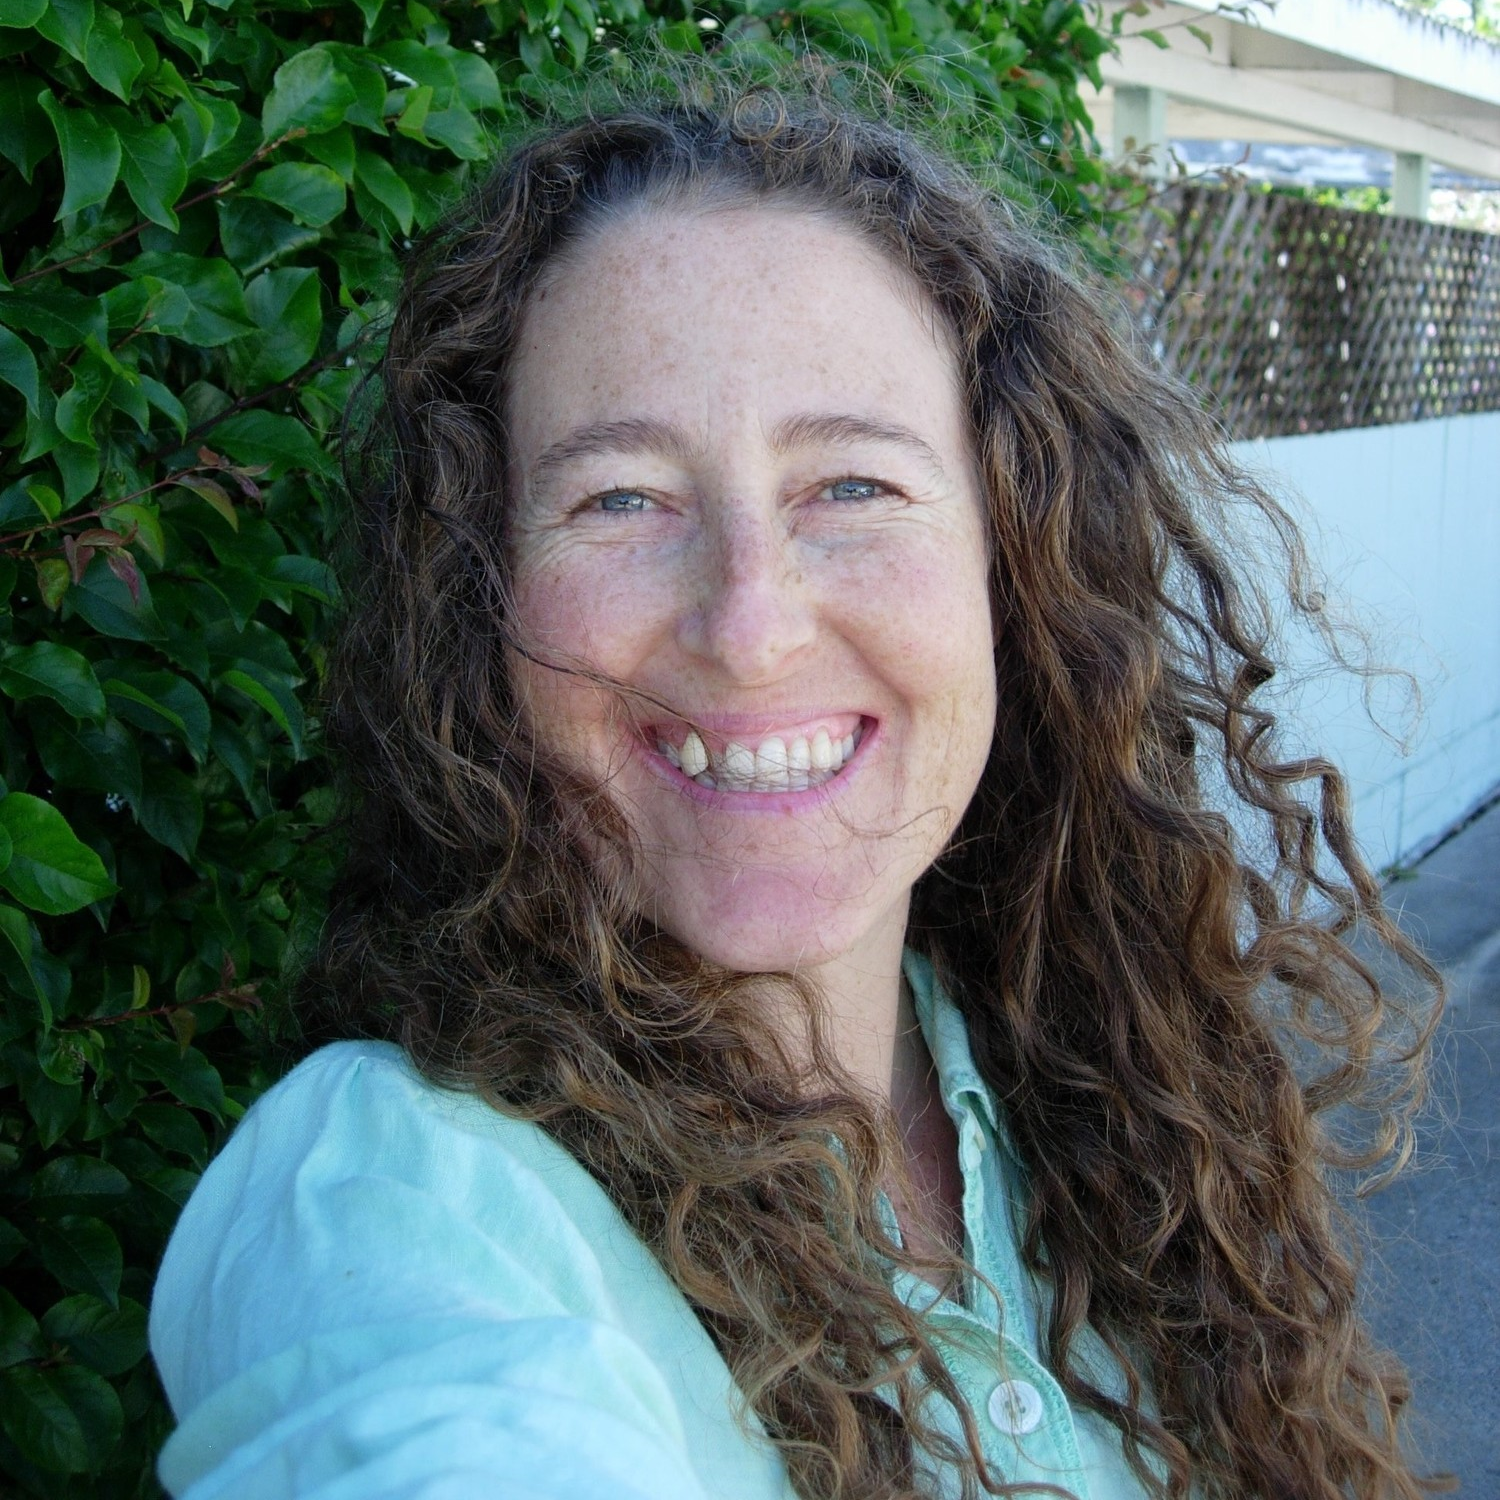 Beth Freewomon   I enthusiastically embracing my recent achievement of reaching my business goals for my healthy meal preparation service, The Open Hearth. Now I am excited to maintain this success by refining the back end of my business which will include the refinement of sacred commerce aspects of the company and our human resources.   http://iamtheopenhearth.com